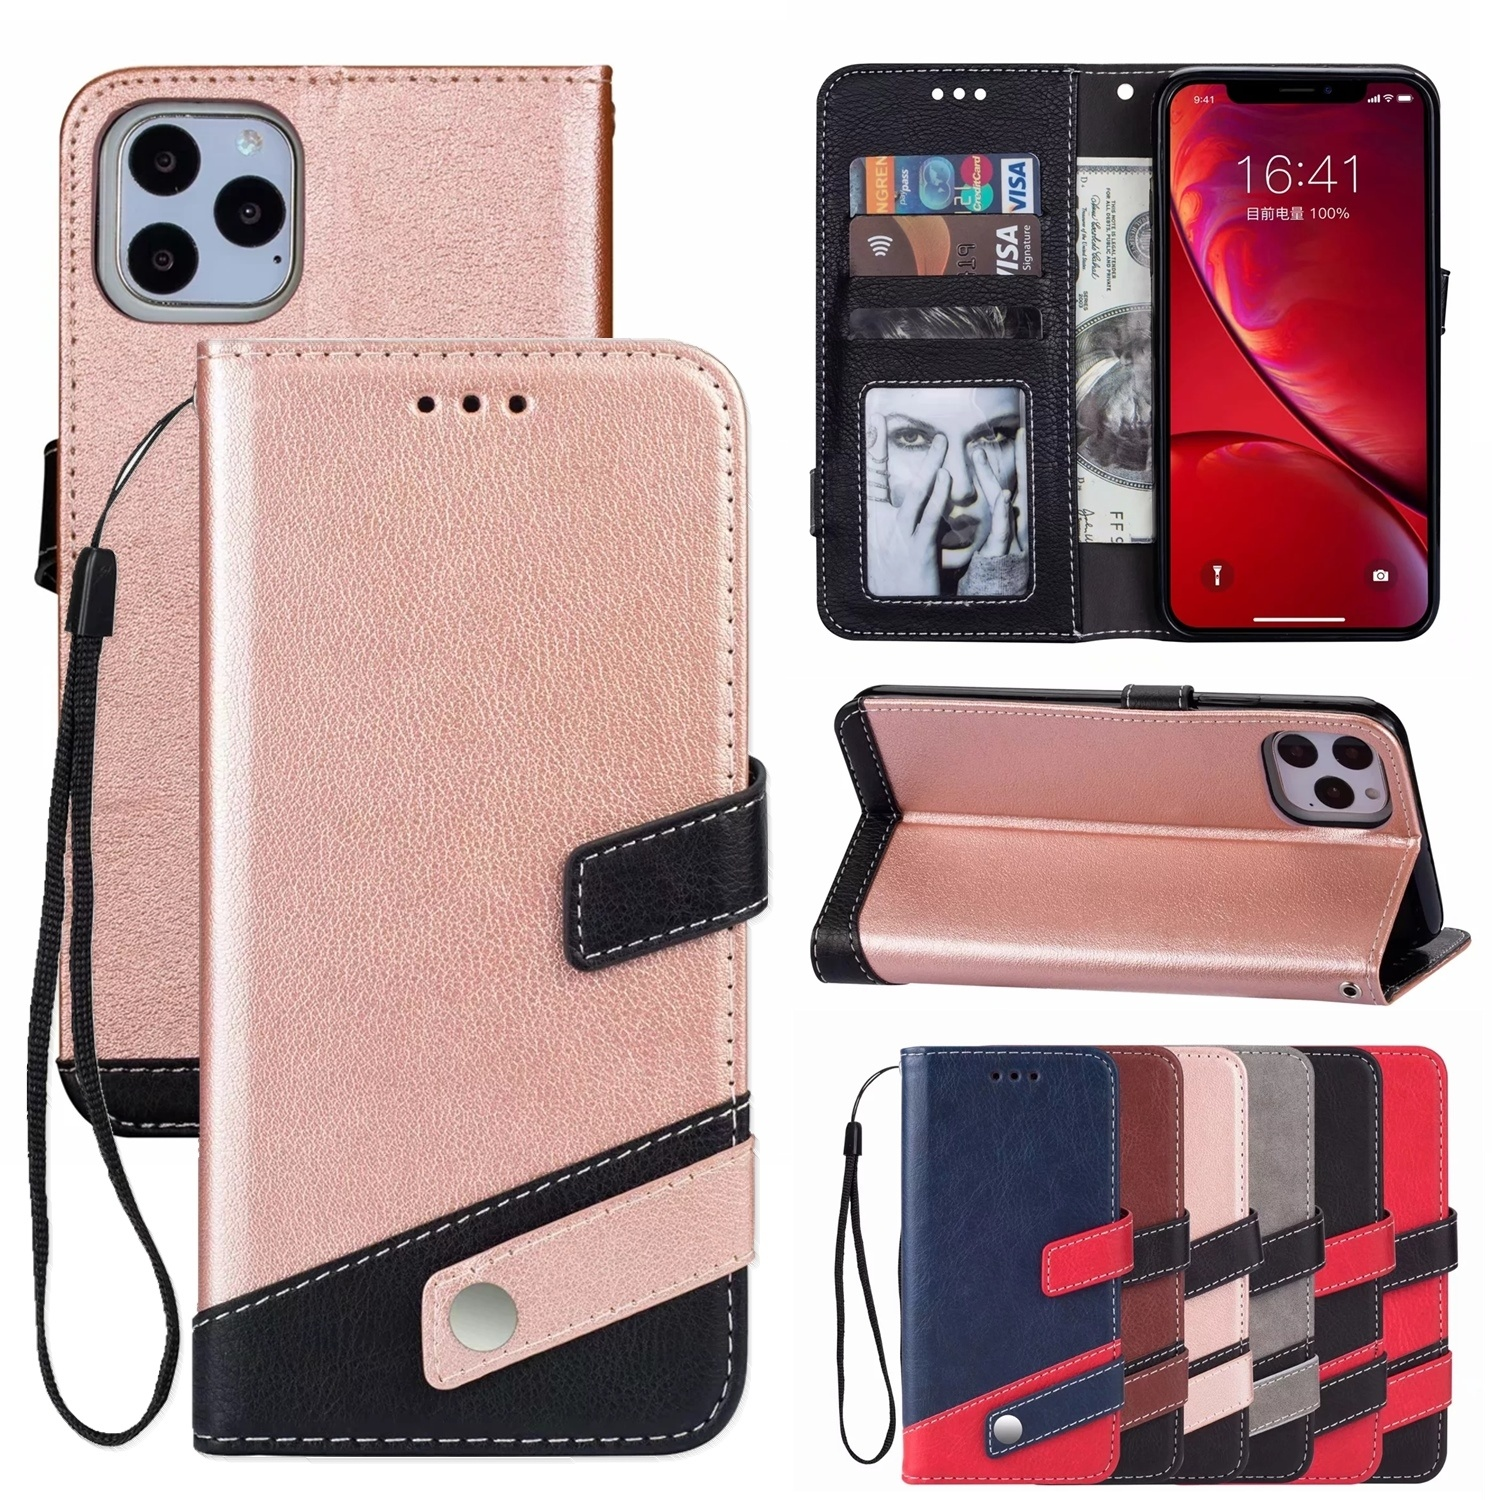 Luxury Leather <font><b>Case</b></font> for <font><b>IPhone</b></font> 11 Pro Max Xs Max XR XS X 8 7 6 S Plus 5S SE 2020 Magnetic Flip Wallet Card Stand Cover Phone Bag image